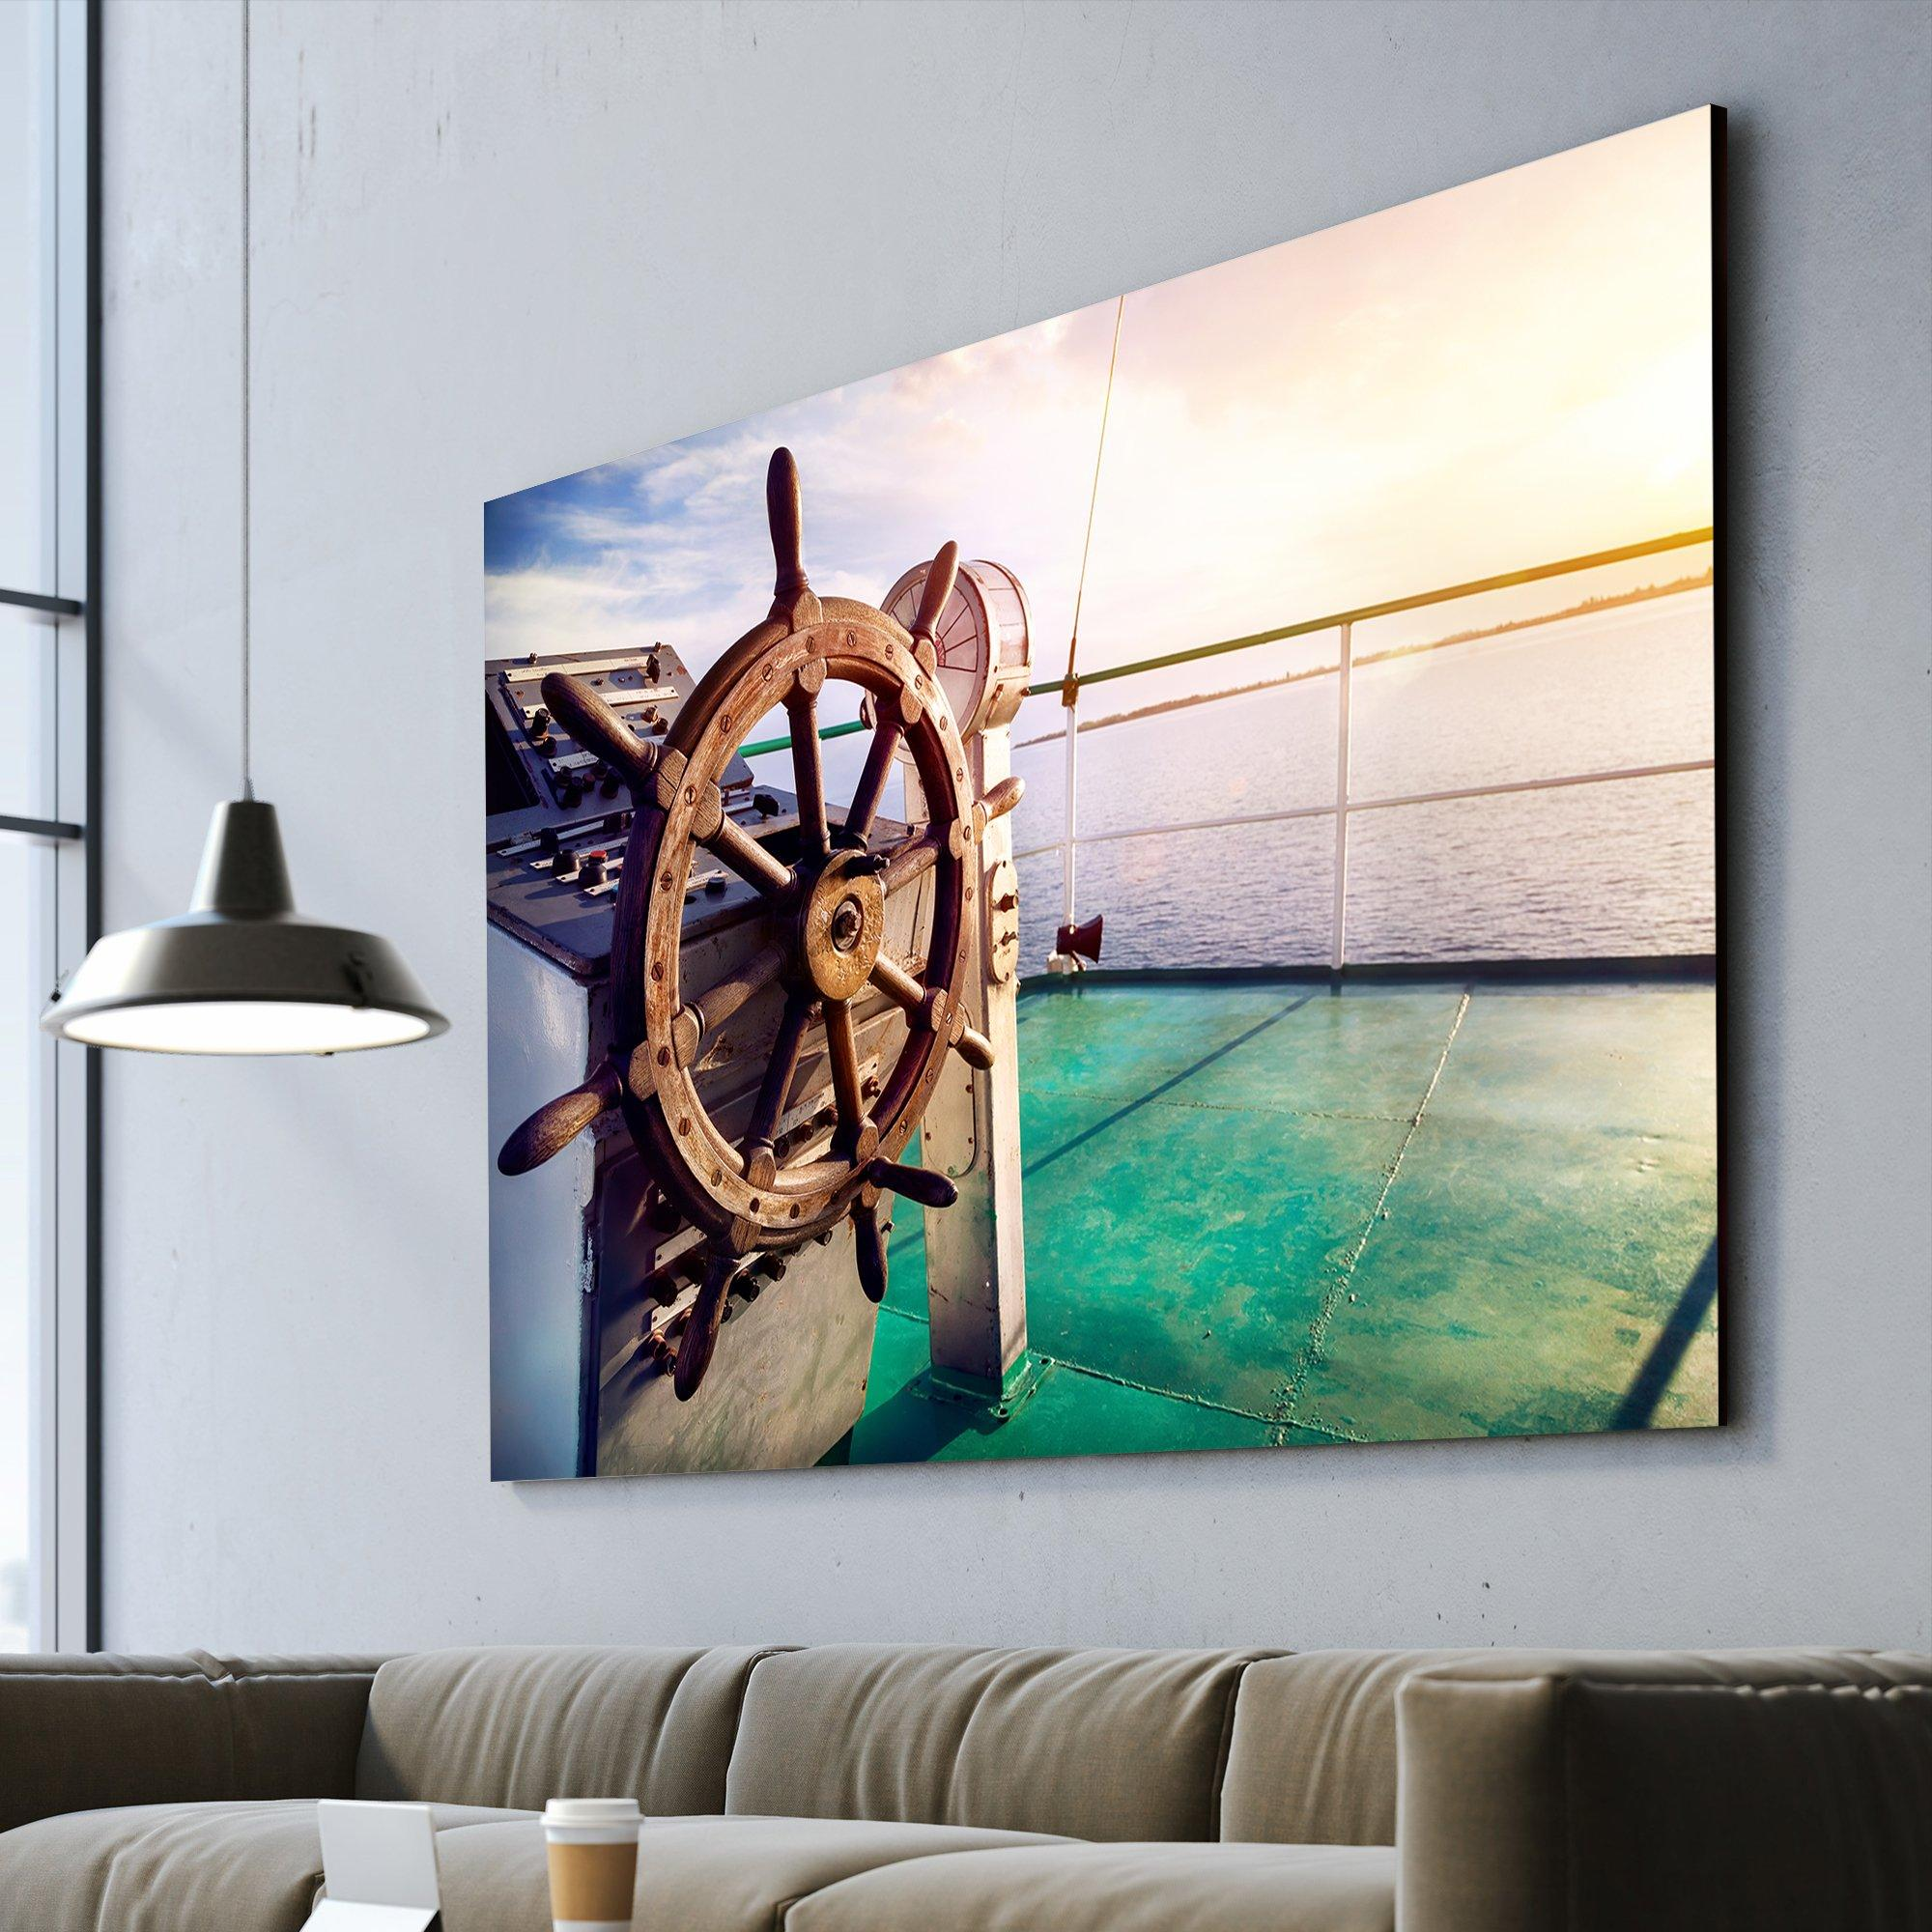 Issyk Kul Lake cruise ship wall art